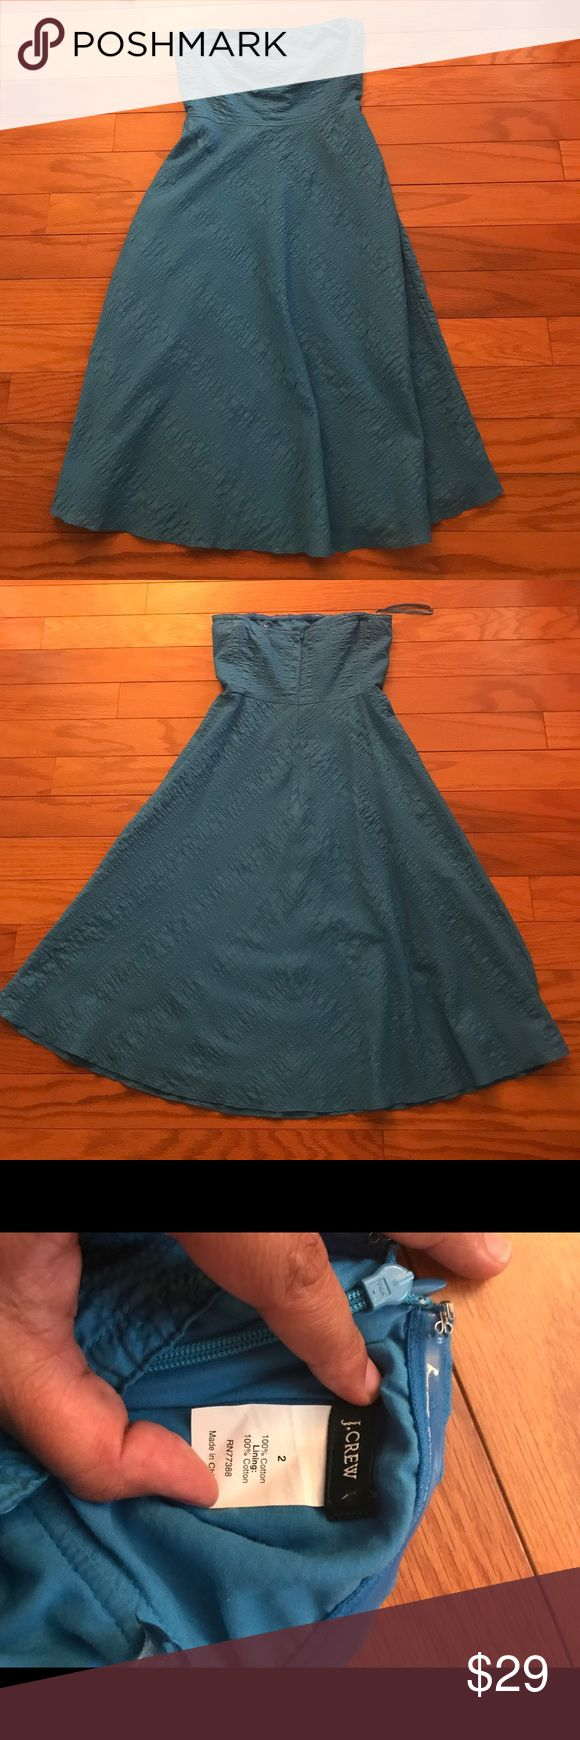 J. Crew Blue Strapless Sundress Everyone needs a classic cotton sundress! This one is for you. Classic silhouette. Textured. 100% cotton. Lined. J. Crew Dresses Strapless